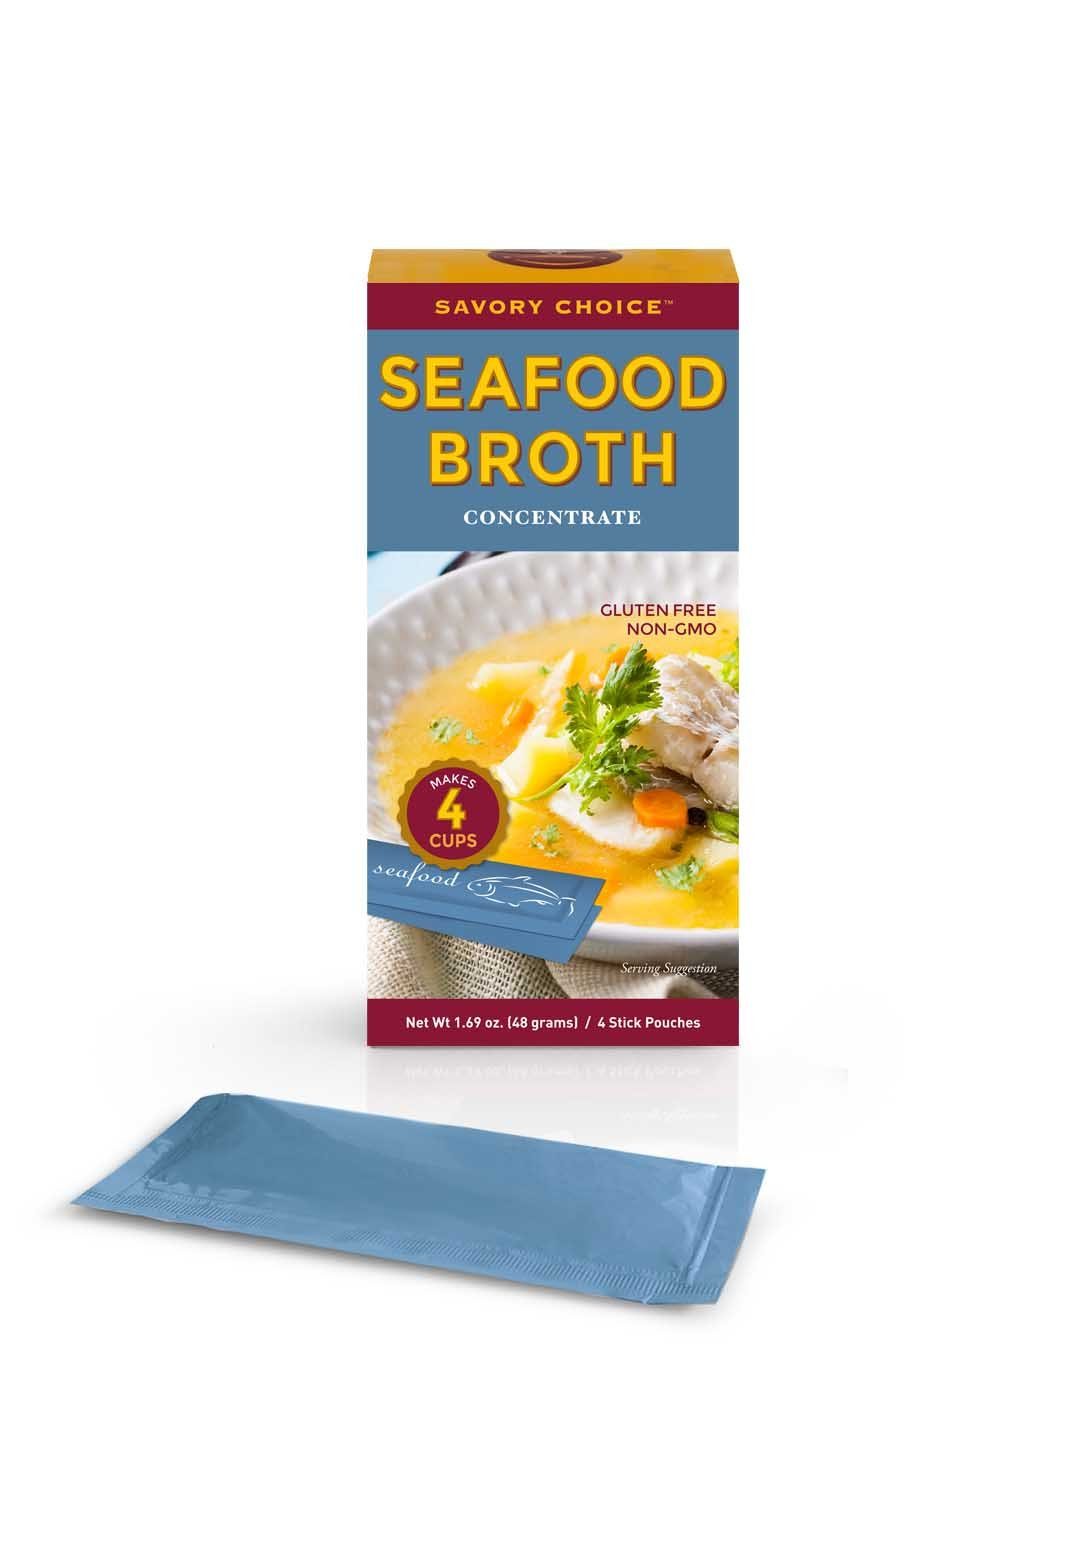 Savory Choice Seafood Broth Concentrate, Safood, 1.69 Ounce (Pack of 12)